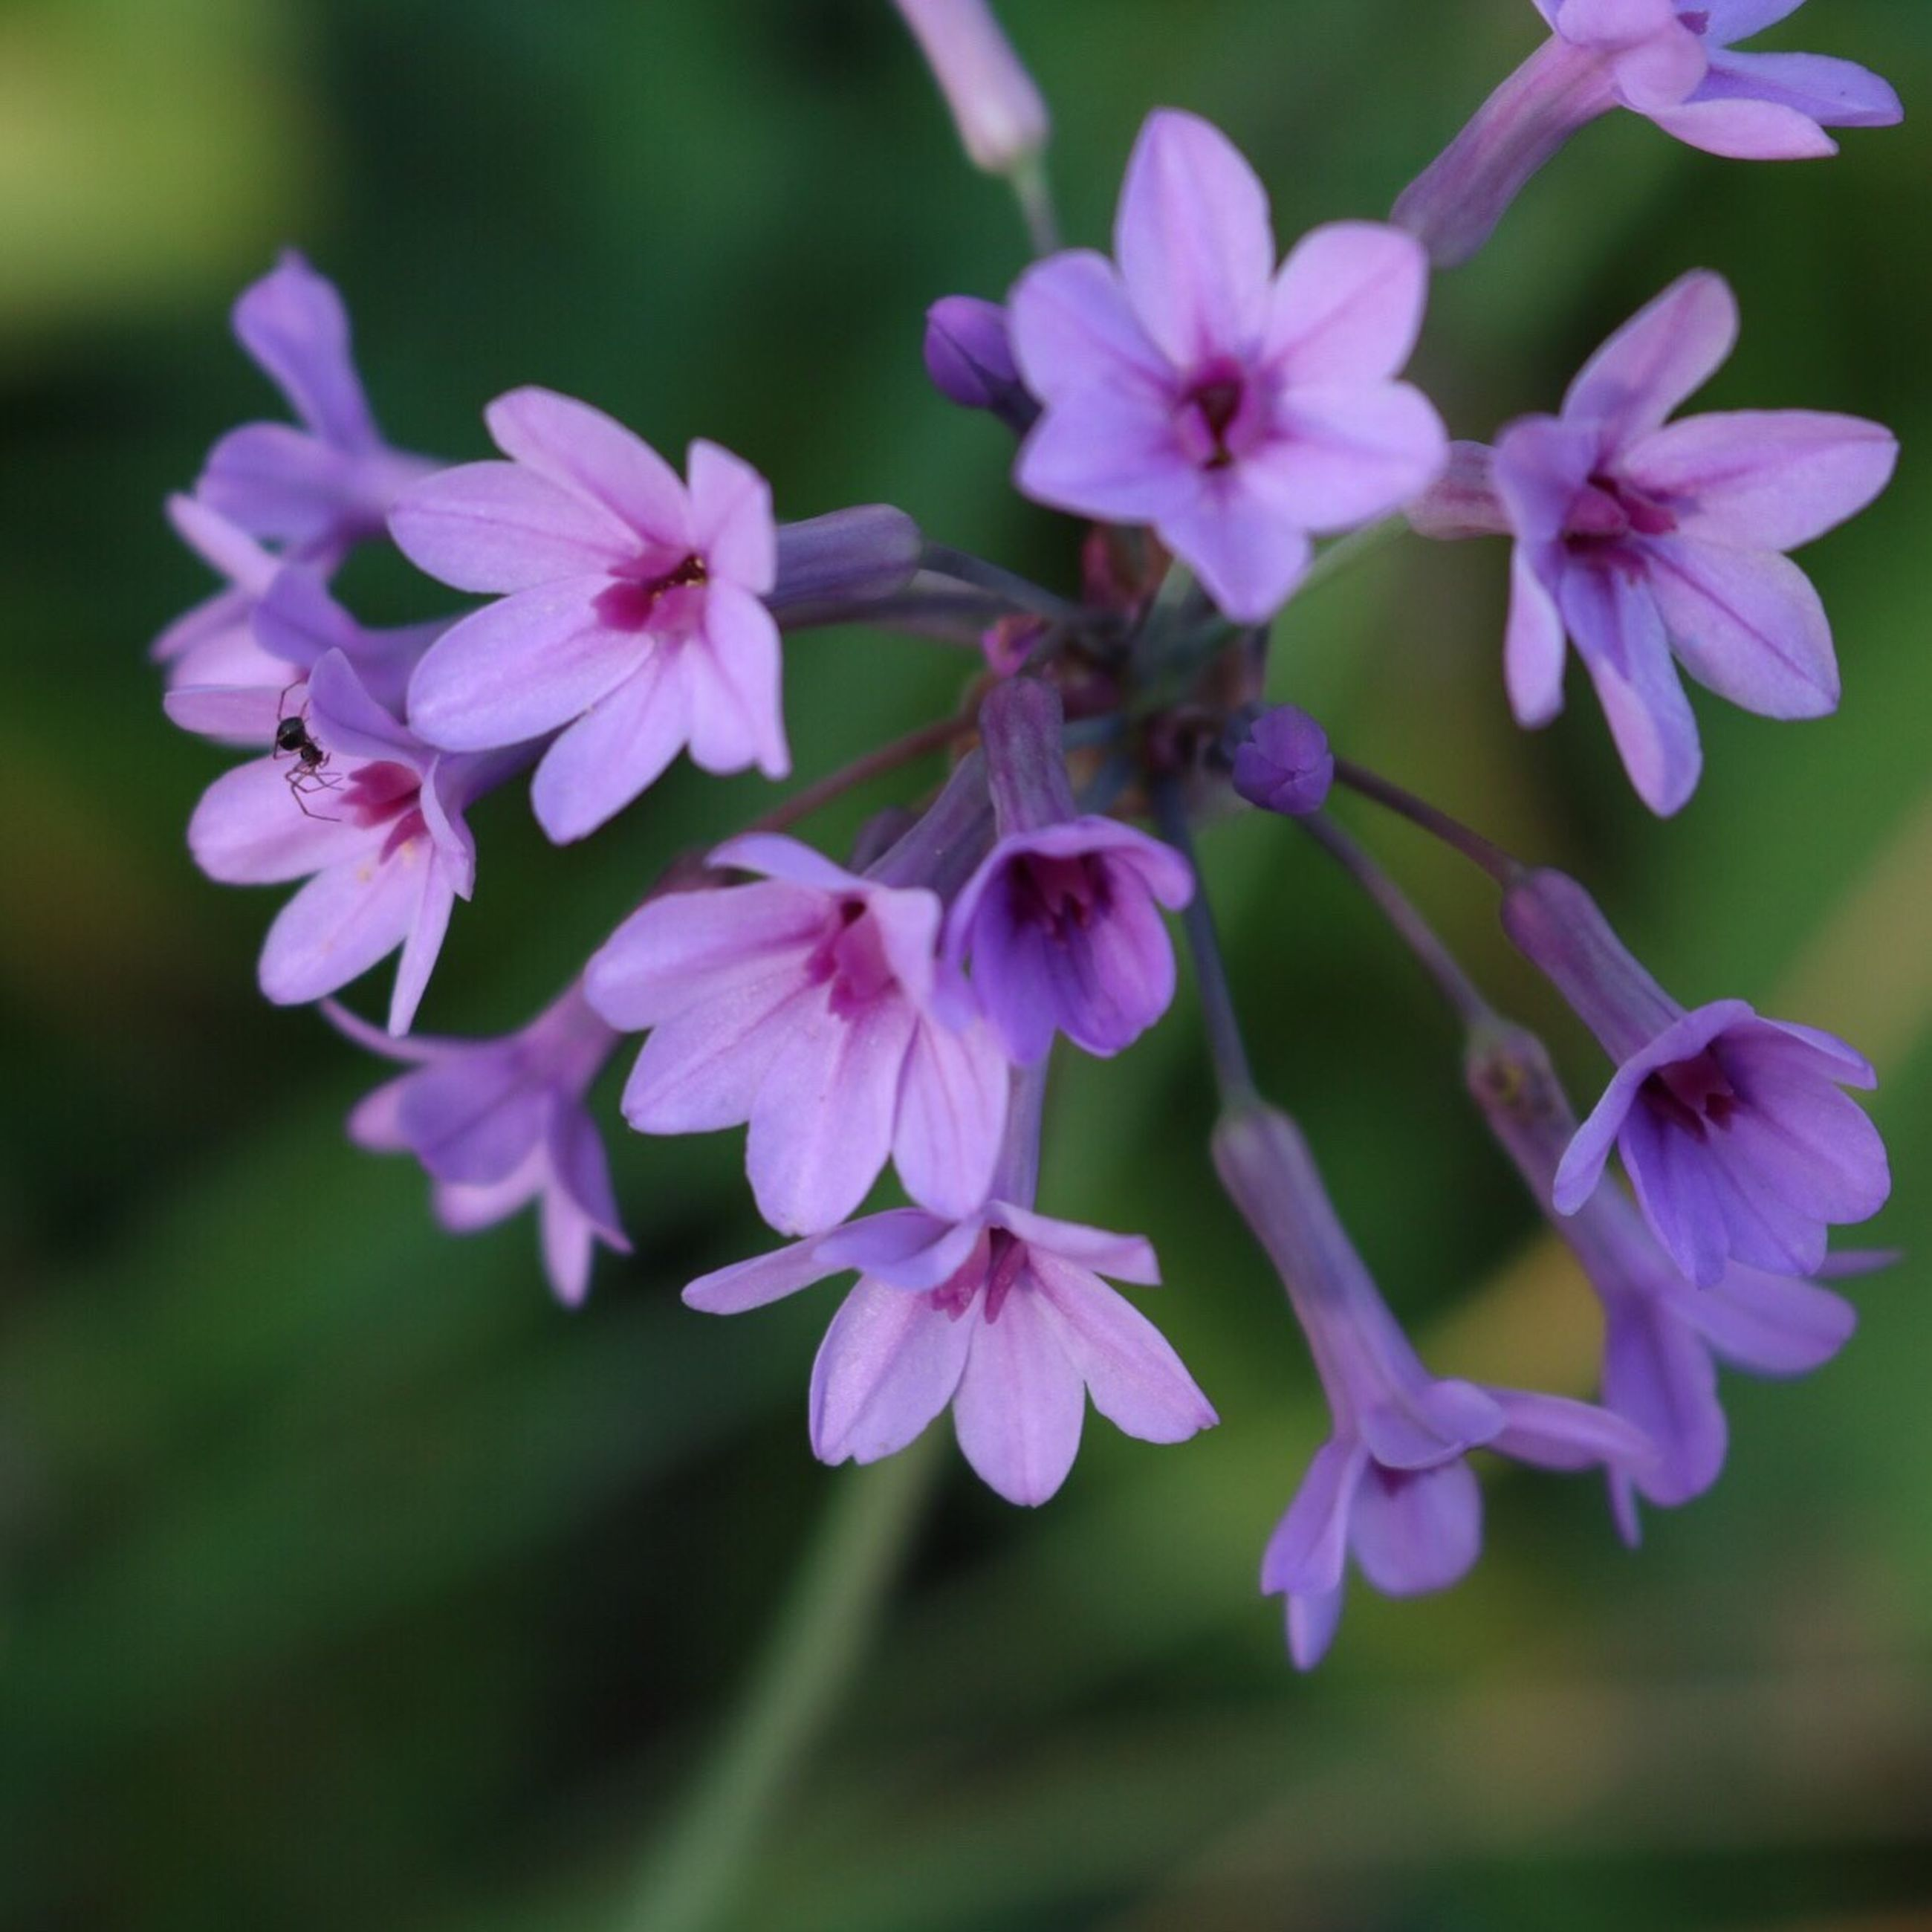 flower, freshness, fragility, nature, beauty in nature, growth, petal, close-up, purple, blooming, no people, flower head, day, outdoors